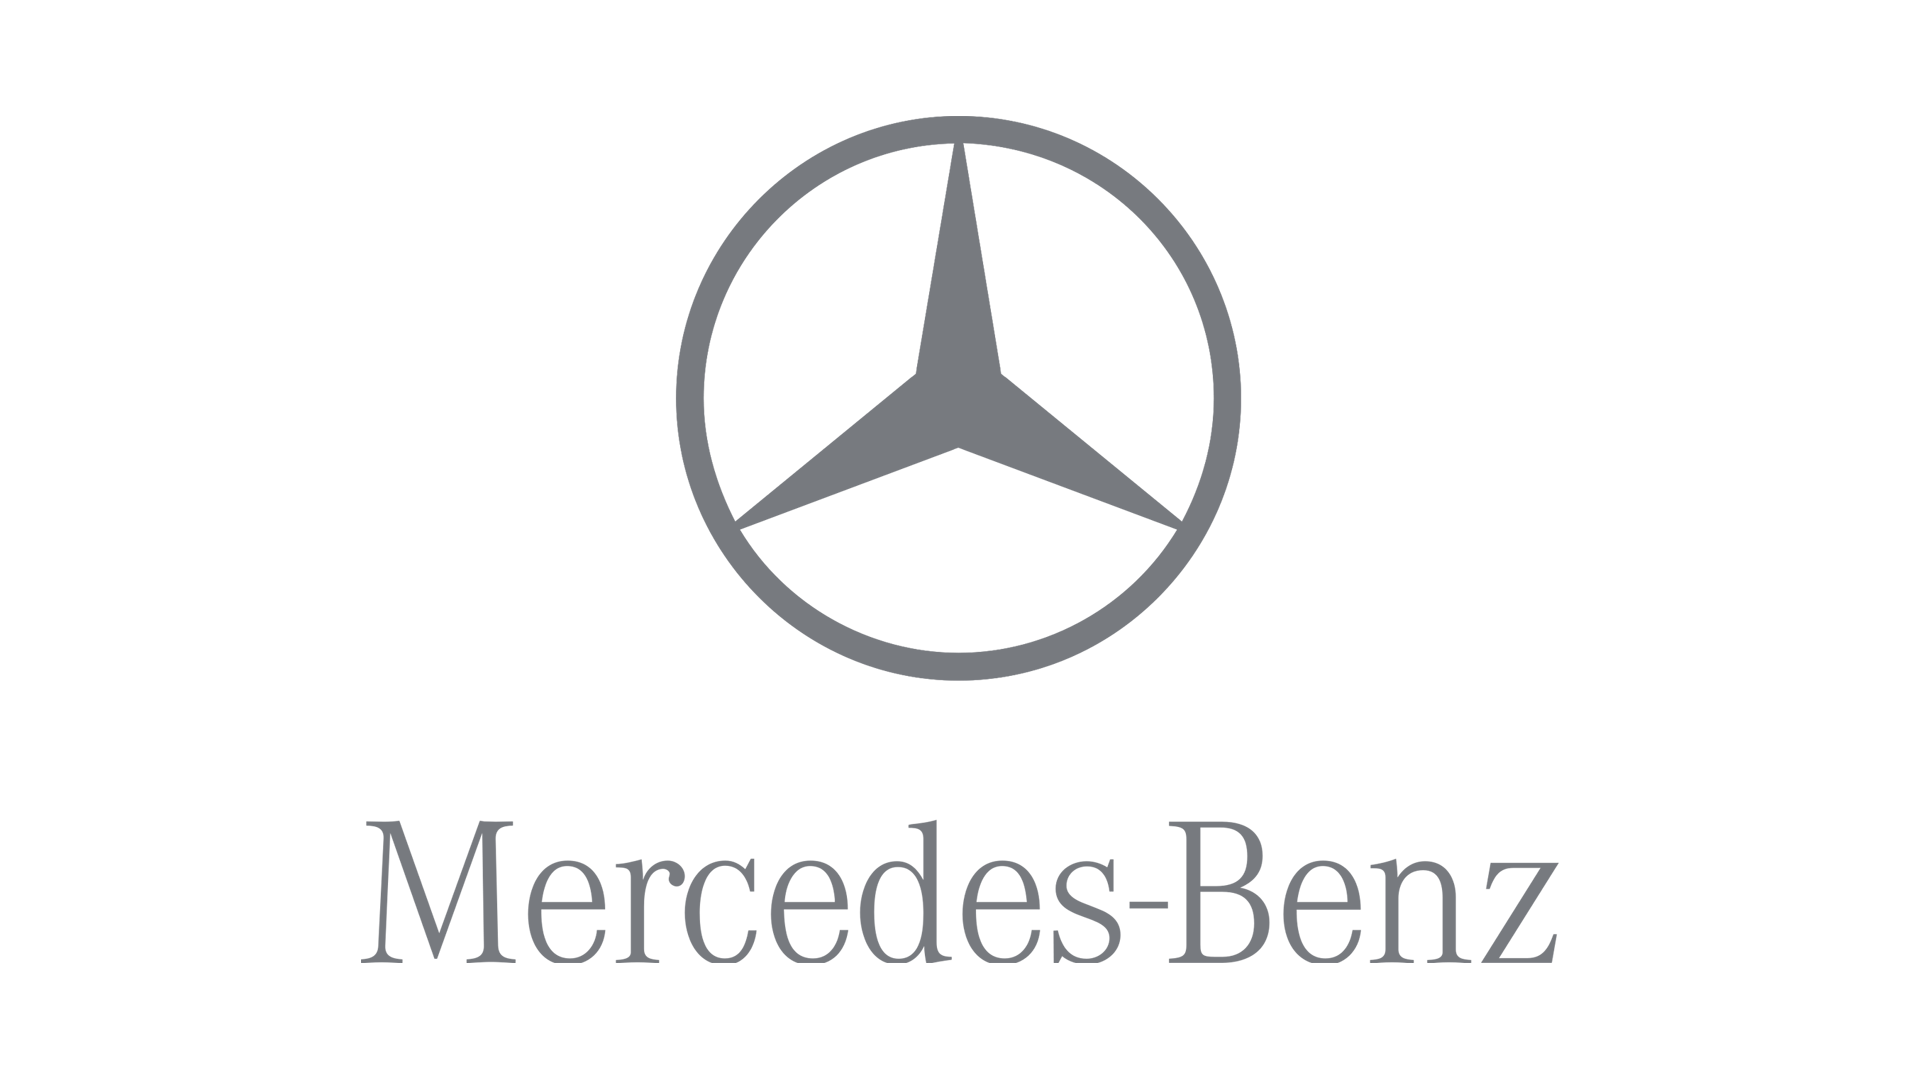 mercedes-benz logo, hd png, meaning, information | carlogos